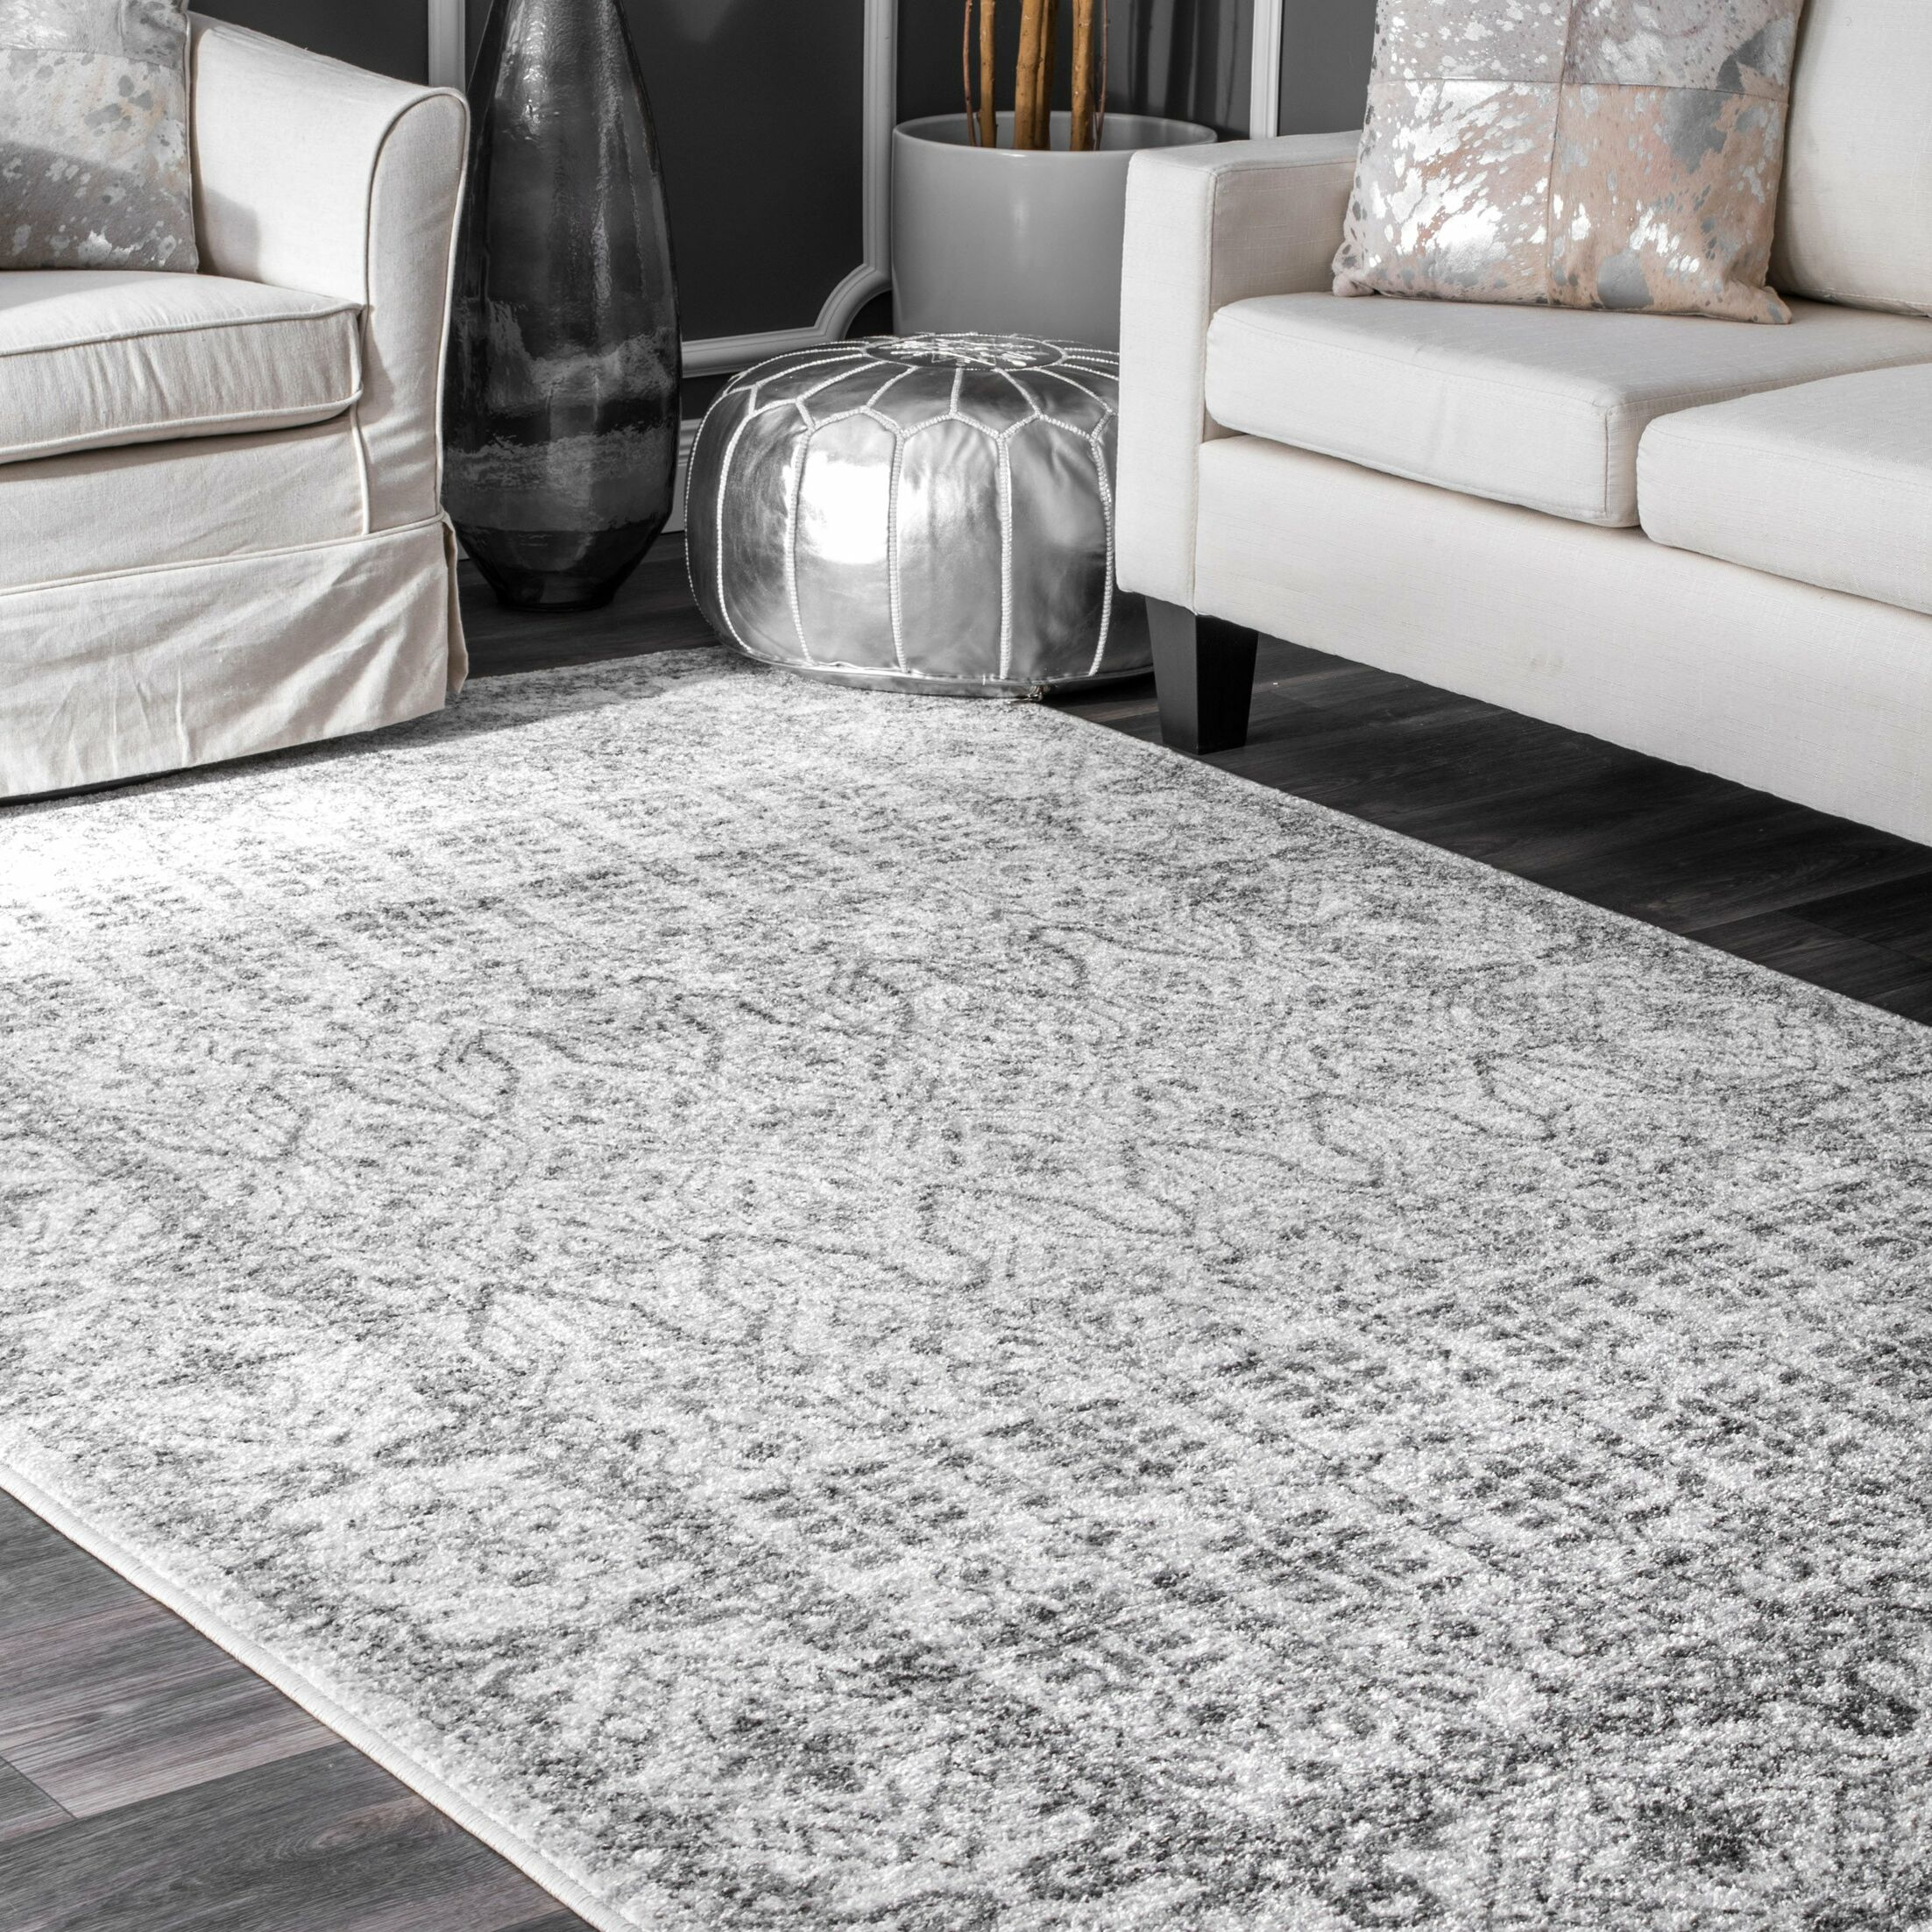 Katondra Gray Area Rug Rug Size: Rectangle 5' x 8'